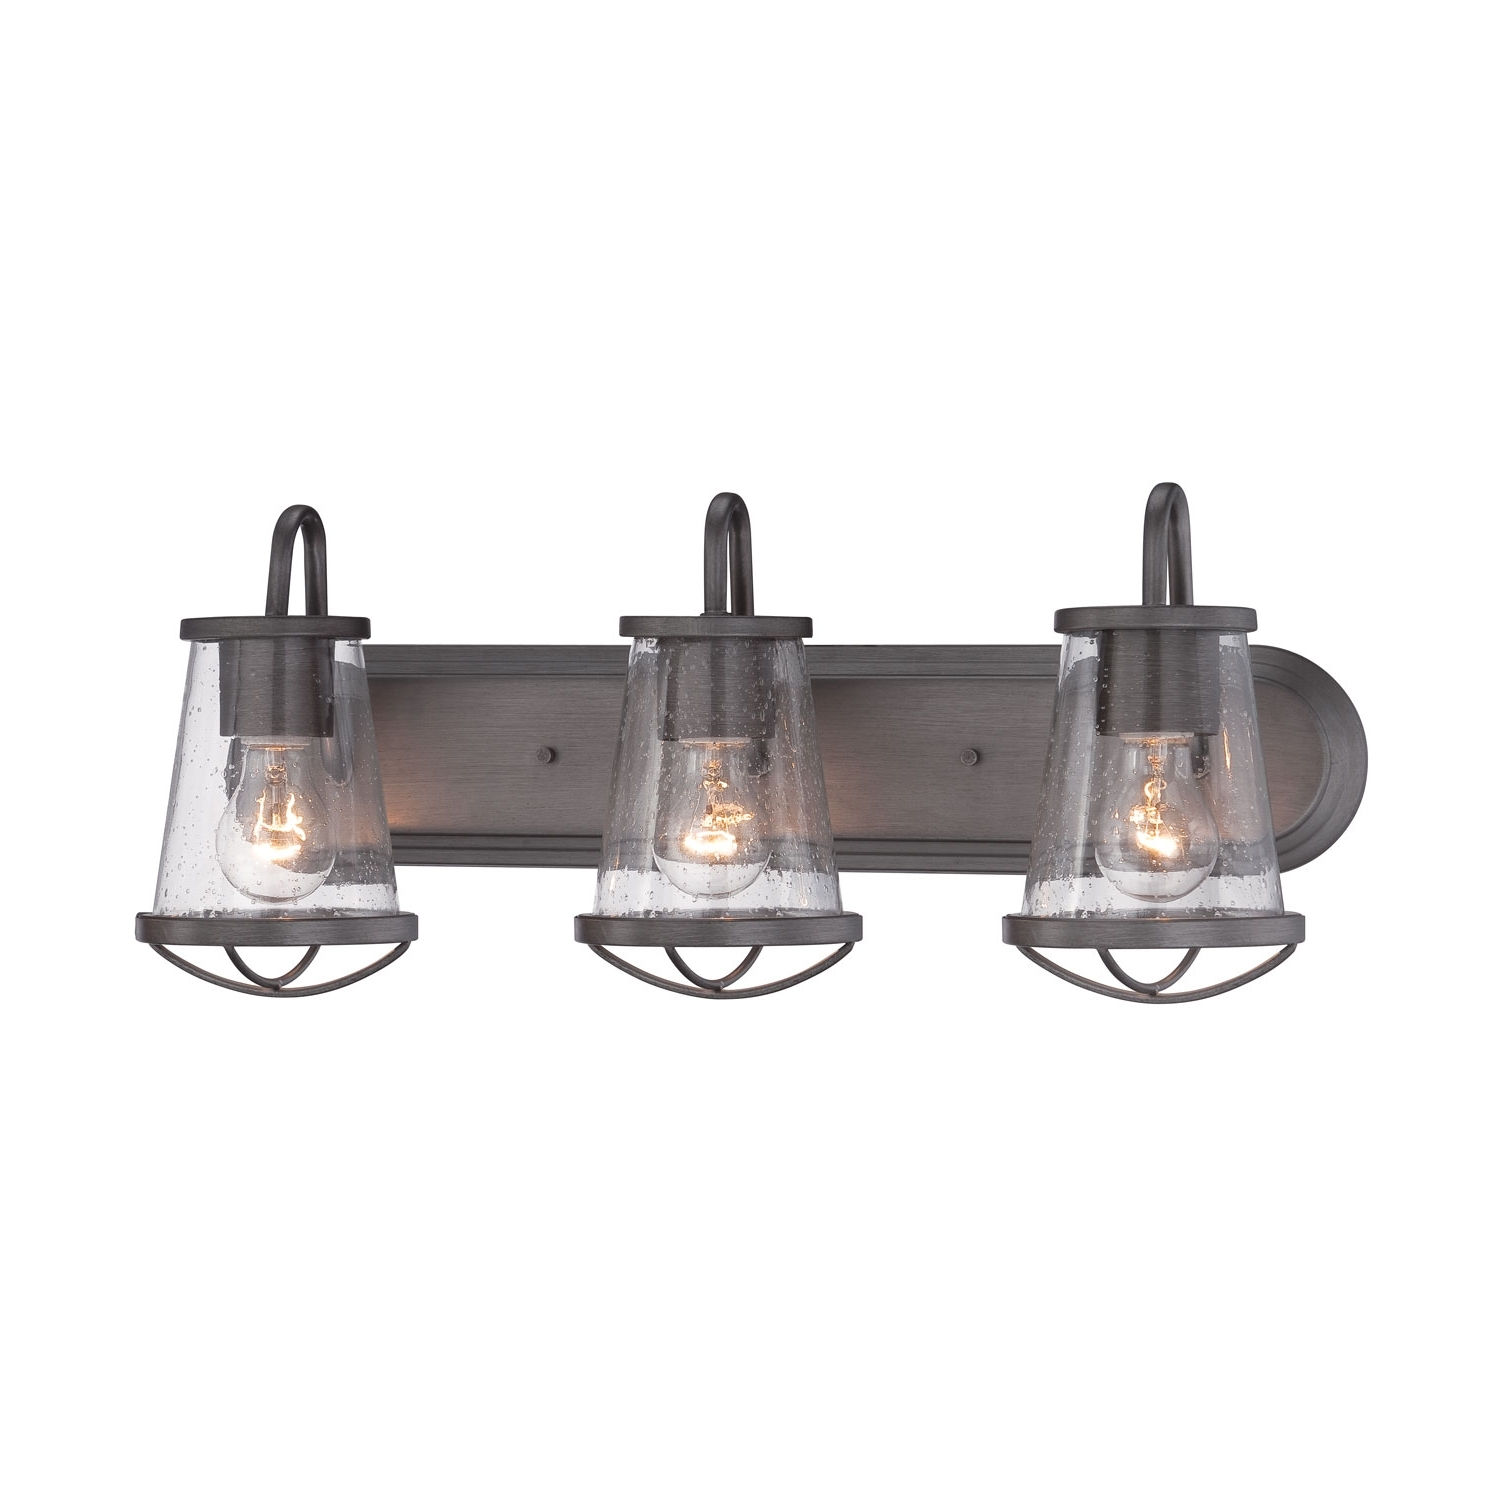 Most Recently Released Fountain Darby Weathered Iron Three Light Bath Bar On Sale Intended For Bathroom Lighting With Matching Chandeliers (View 16 of 20)